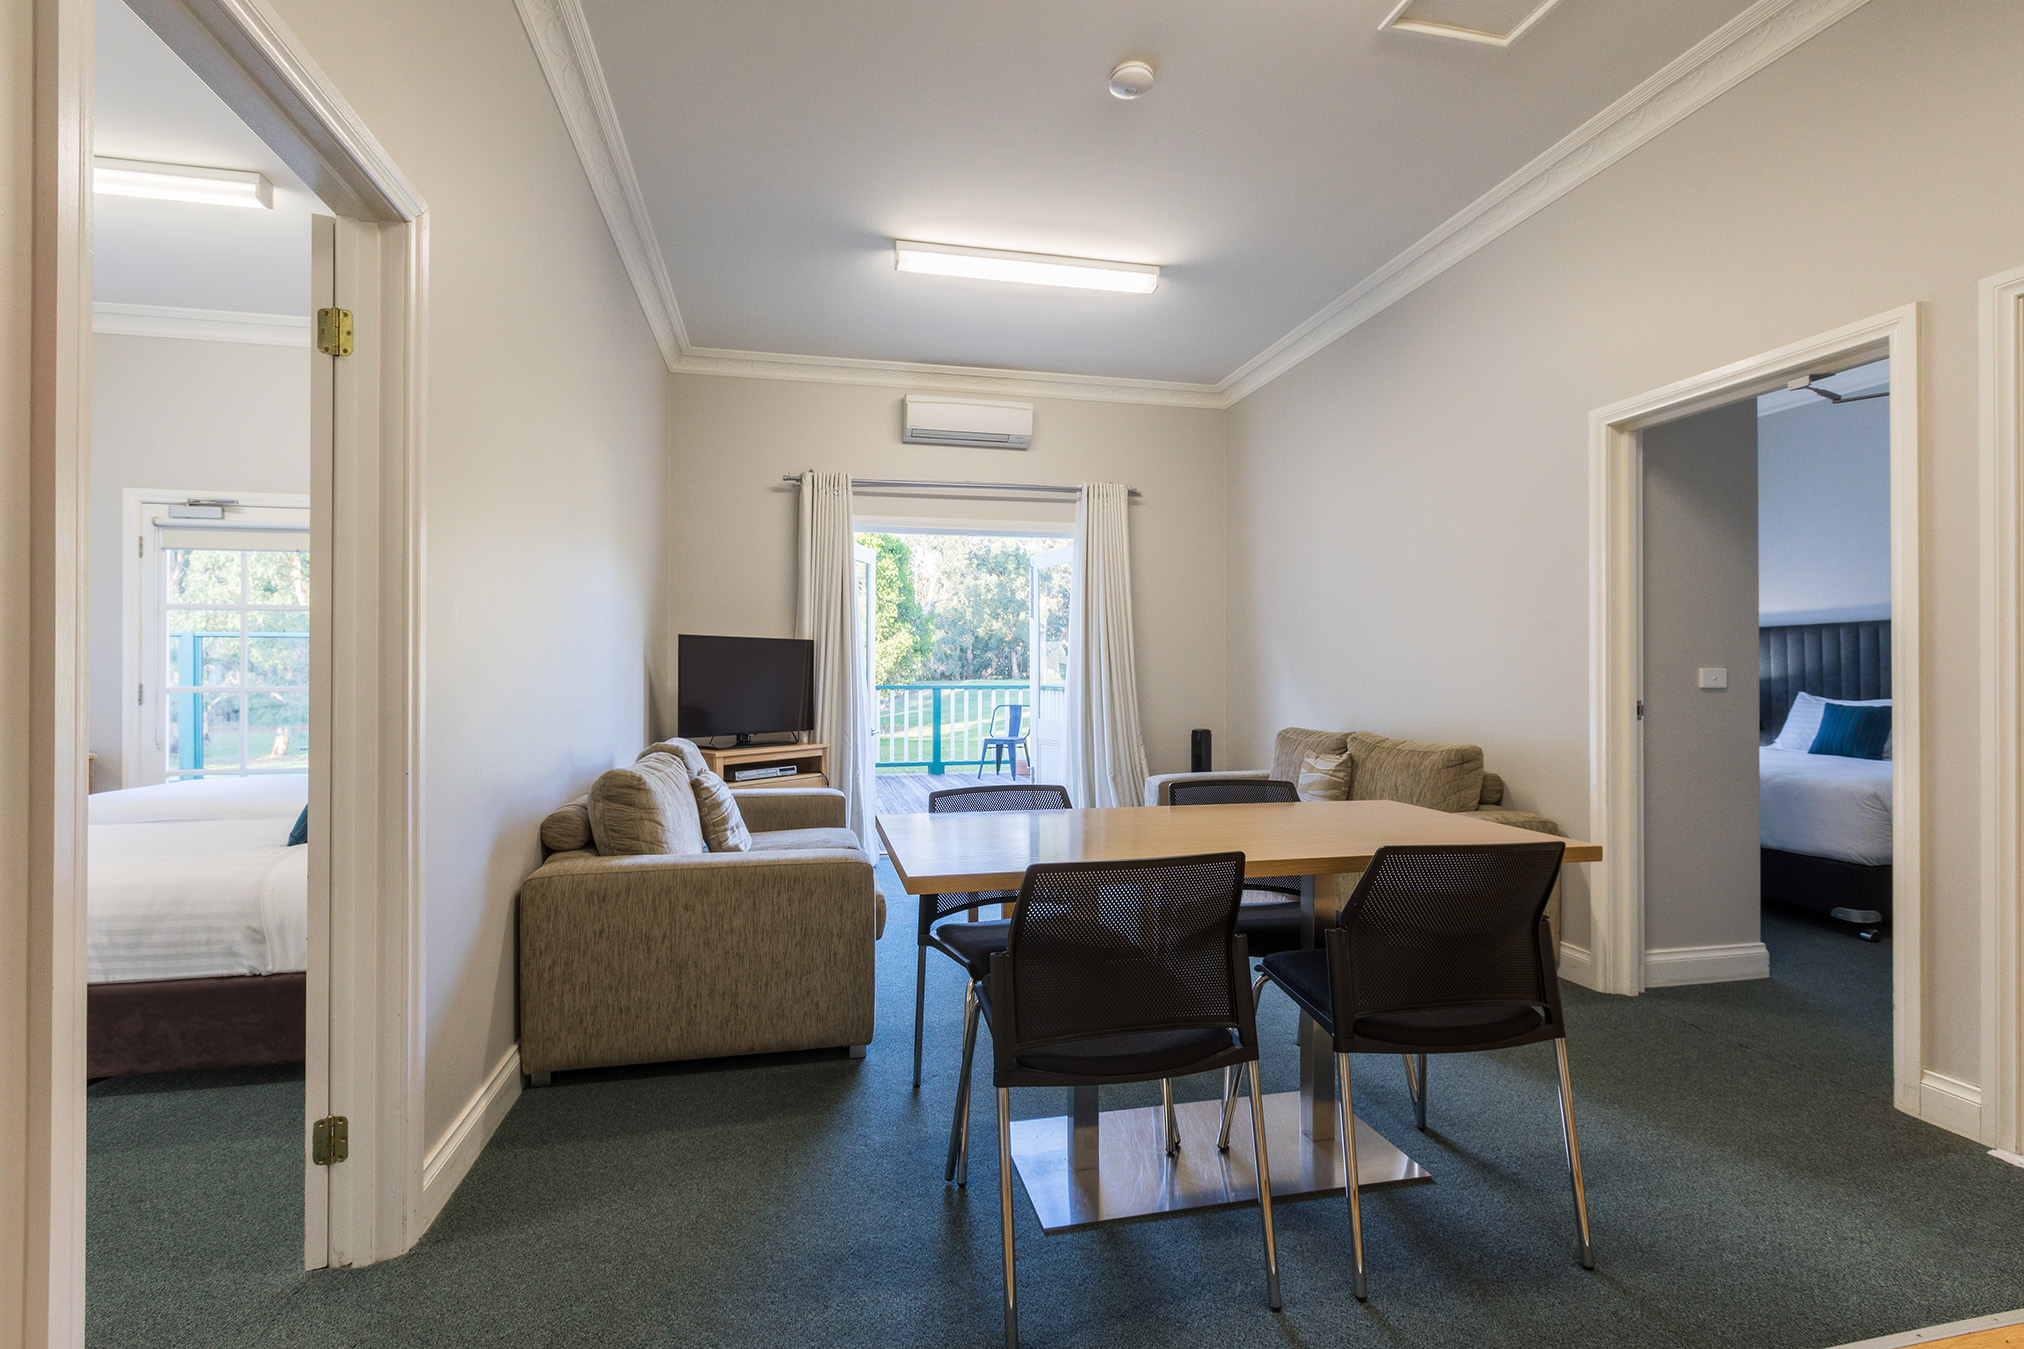 Two Bedroom Apartment - Our Two Bedroom Apartment allows you to share accommodation with your traveling party, with 2 beautifully appointed King bedrooms joined by a comfortable private lounge.You also have your own balcony overlooking the expansive lawns running down to the babbling Yarra.This delightful Apartment adjoins our Studio-Conference Room and is a favourite for groups sharing various learning and practical sessions together.